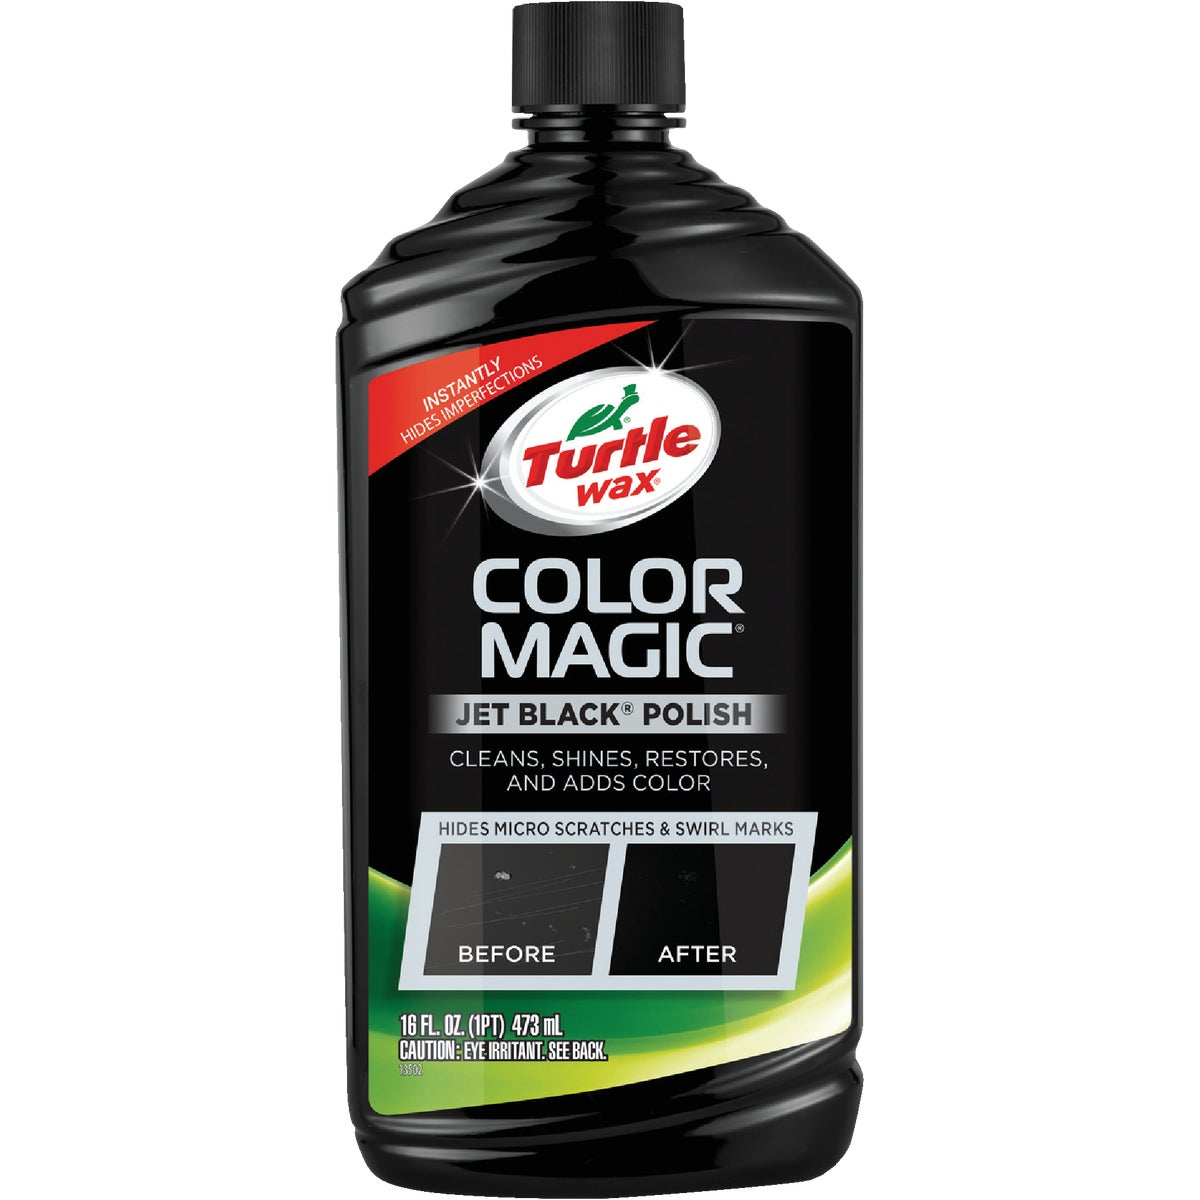 16OZ KIT BLACK AUTO WAX - T374KTR by Turtle Wax Inc